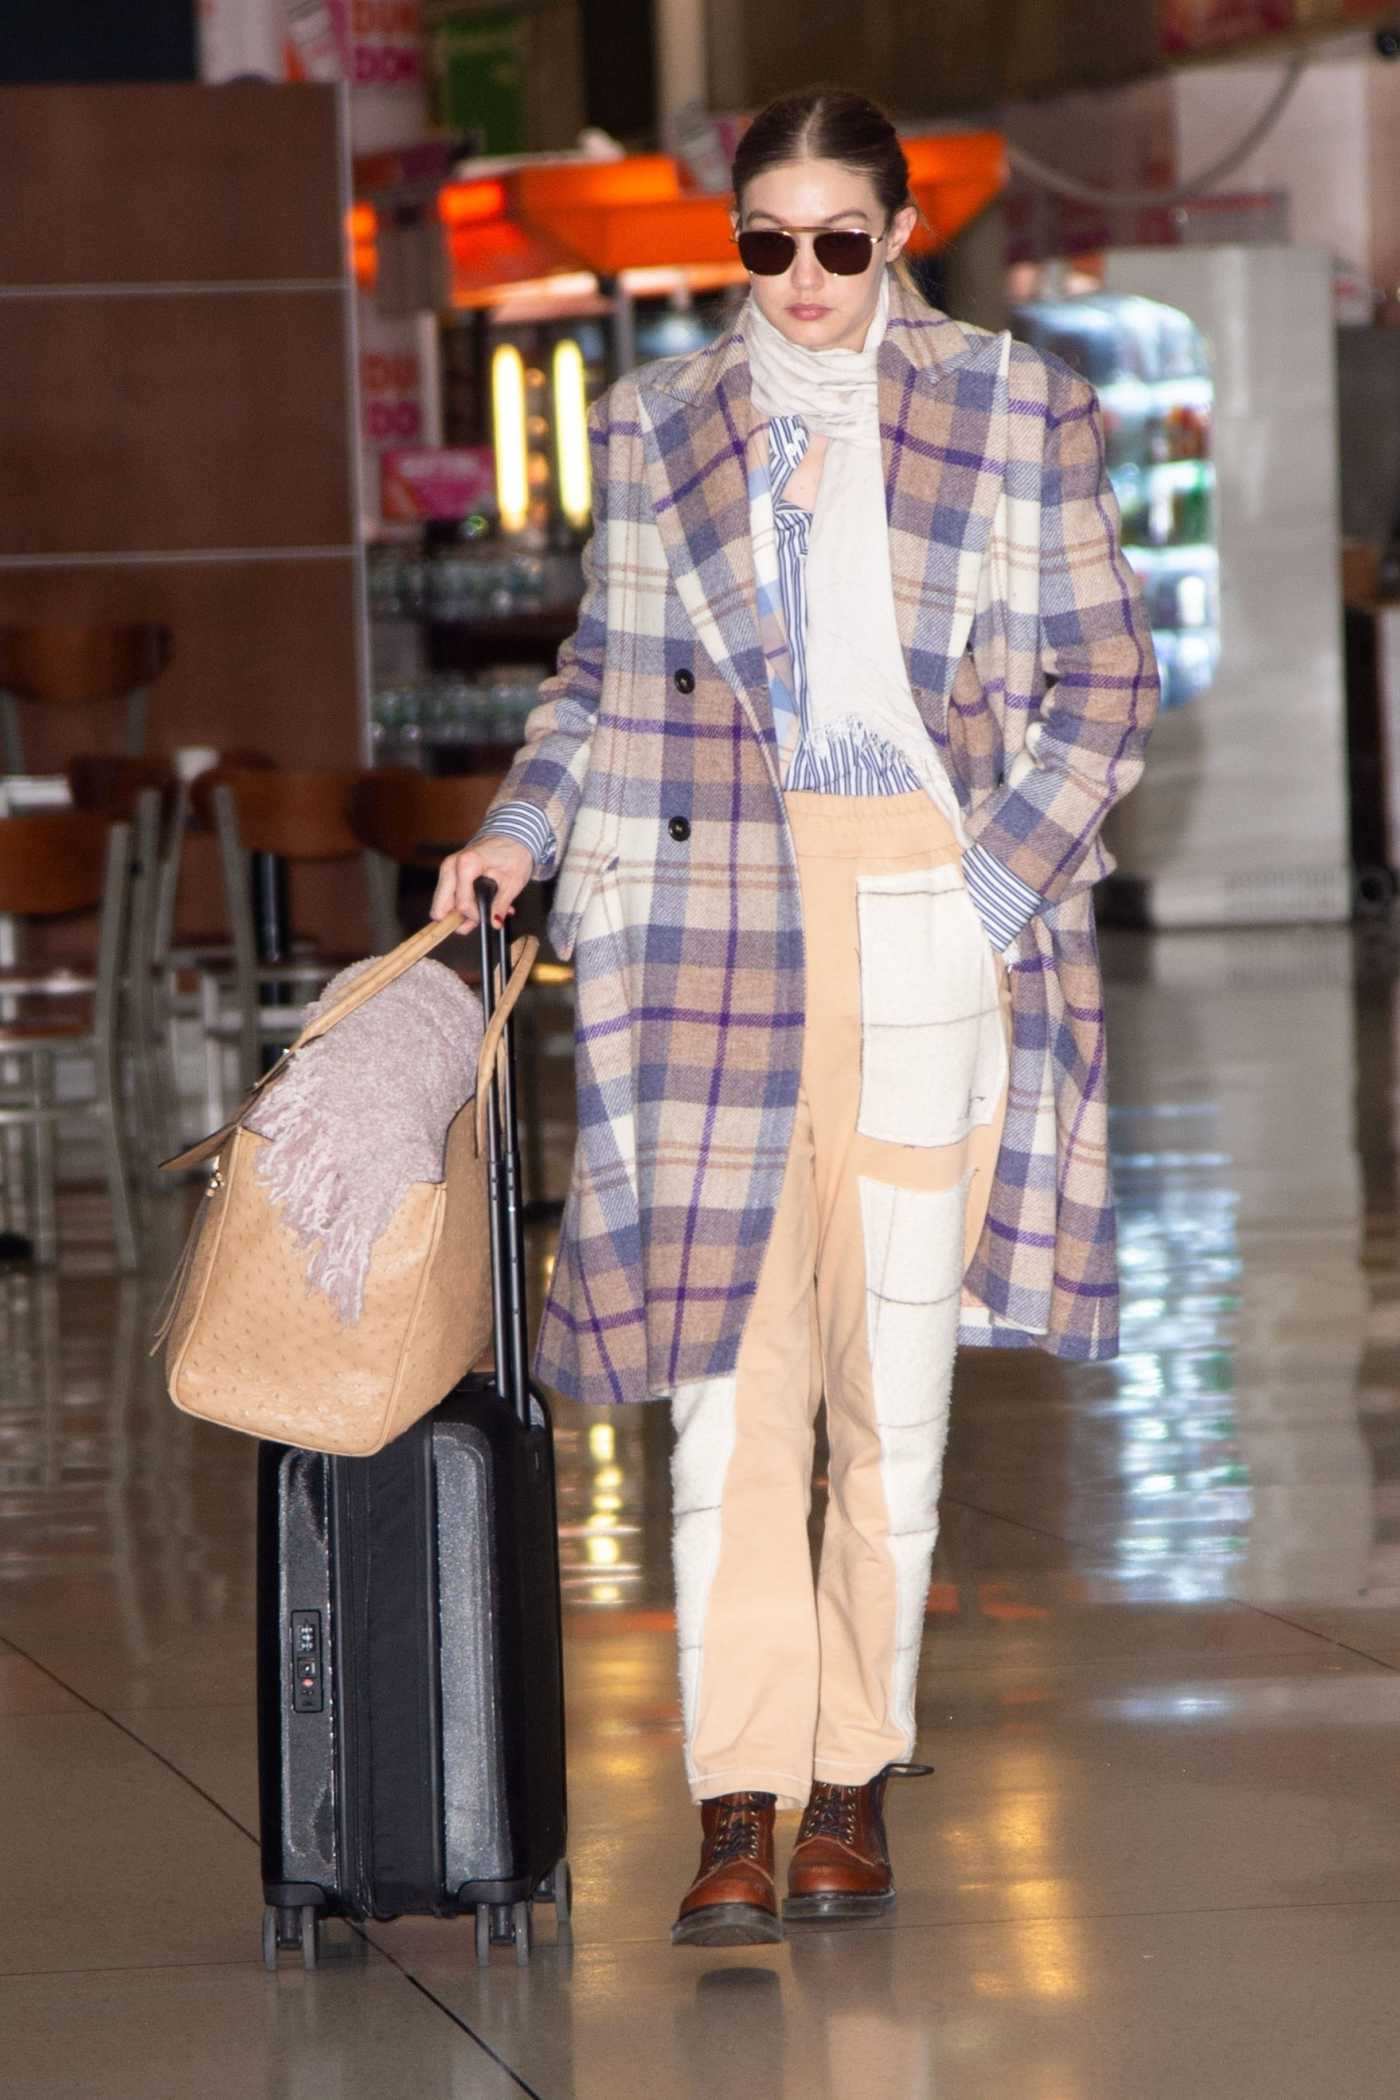 Gigi Hadid in a Plaid Coat Arrives at JFK Airport in New York City 03/03/2020